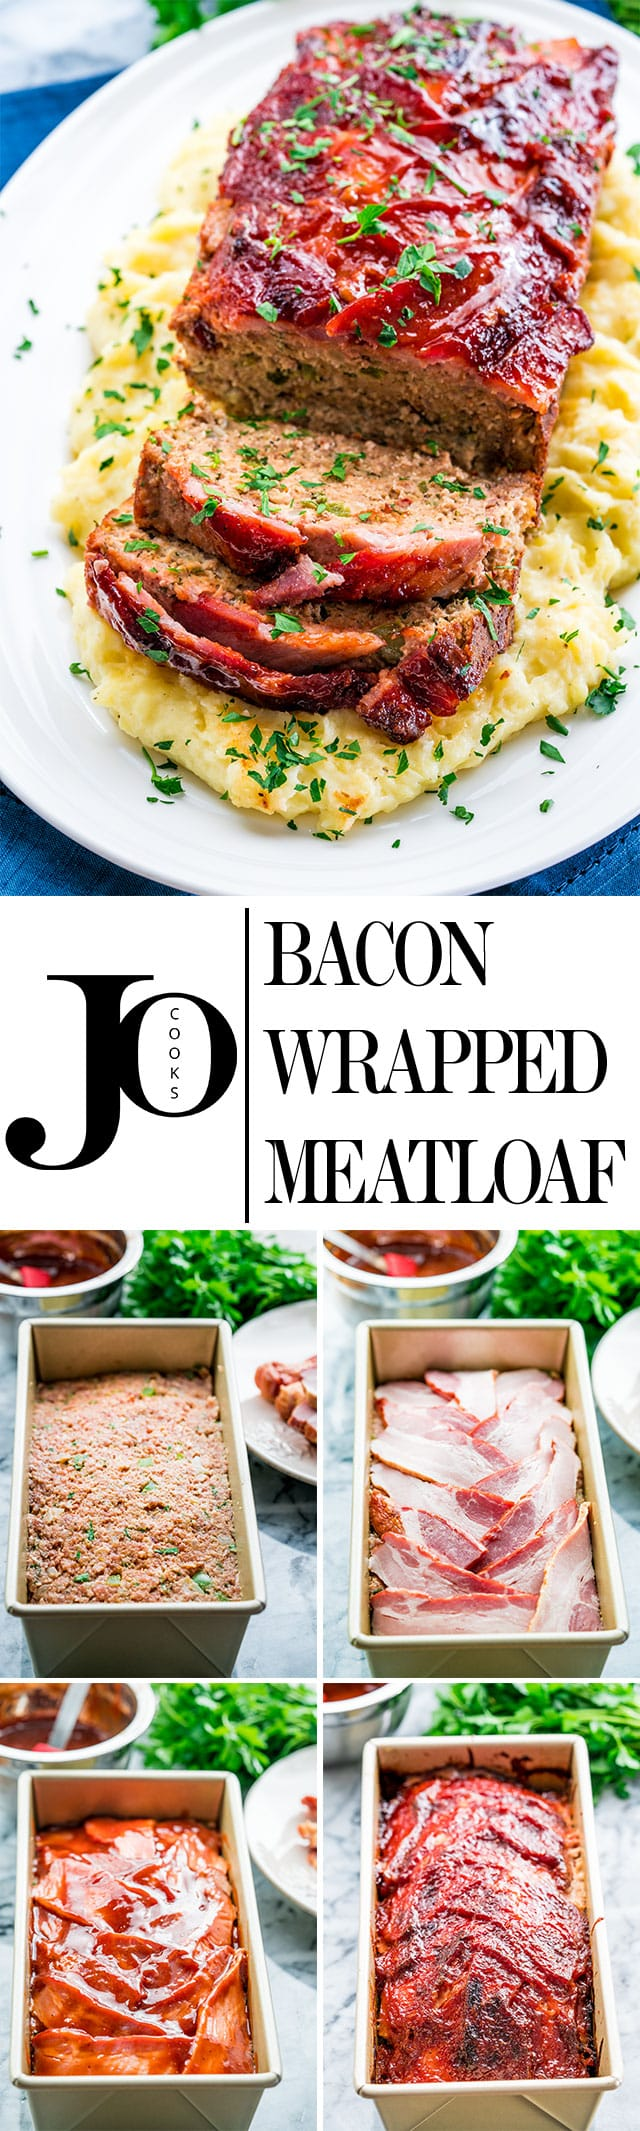 This Bacon Wrapped Meatloaf will become a family favorite for sure! Meatloaf is back and better than ever, full of flavor, some hidden veggies, and wrapped with delicious thick cut bacon! www.jocooks.com #baconwrapped